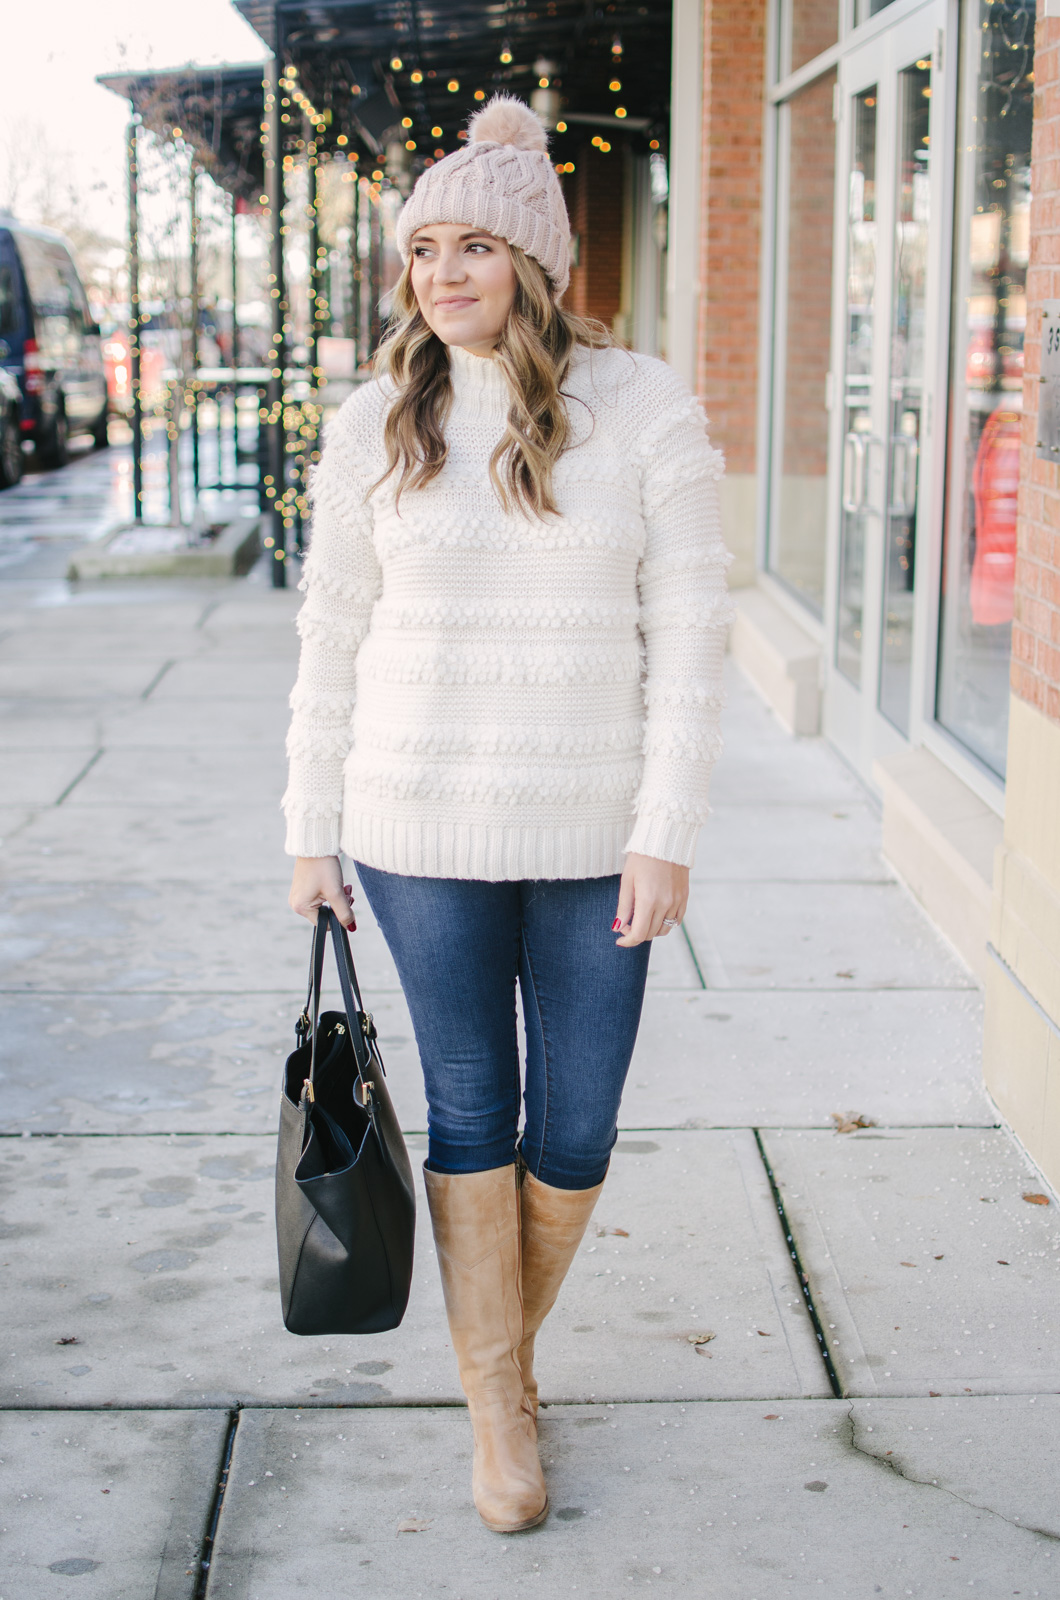 cream sweater outfit - best textured cream sweater! | Get all the outfit details and see more cute Winter outfits at bylaurenm.com!